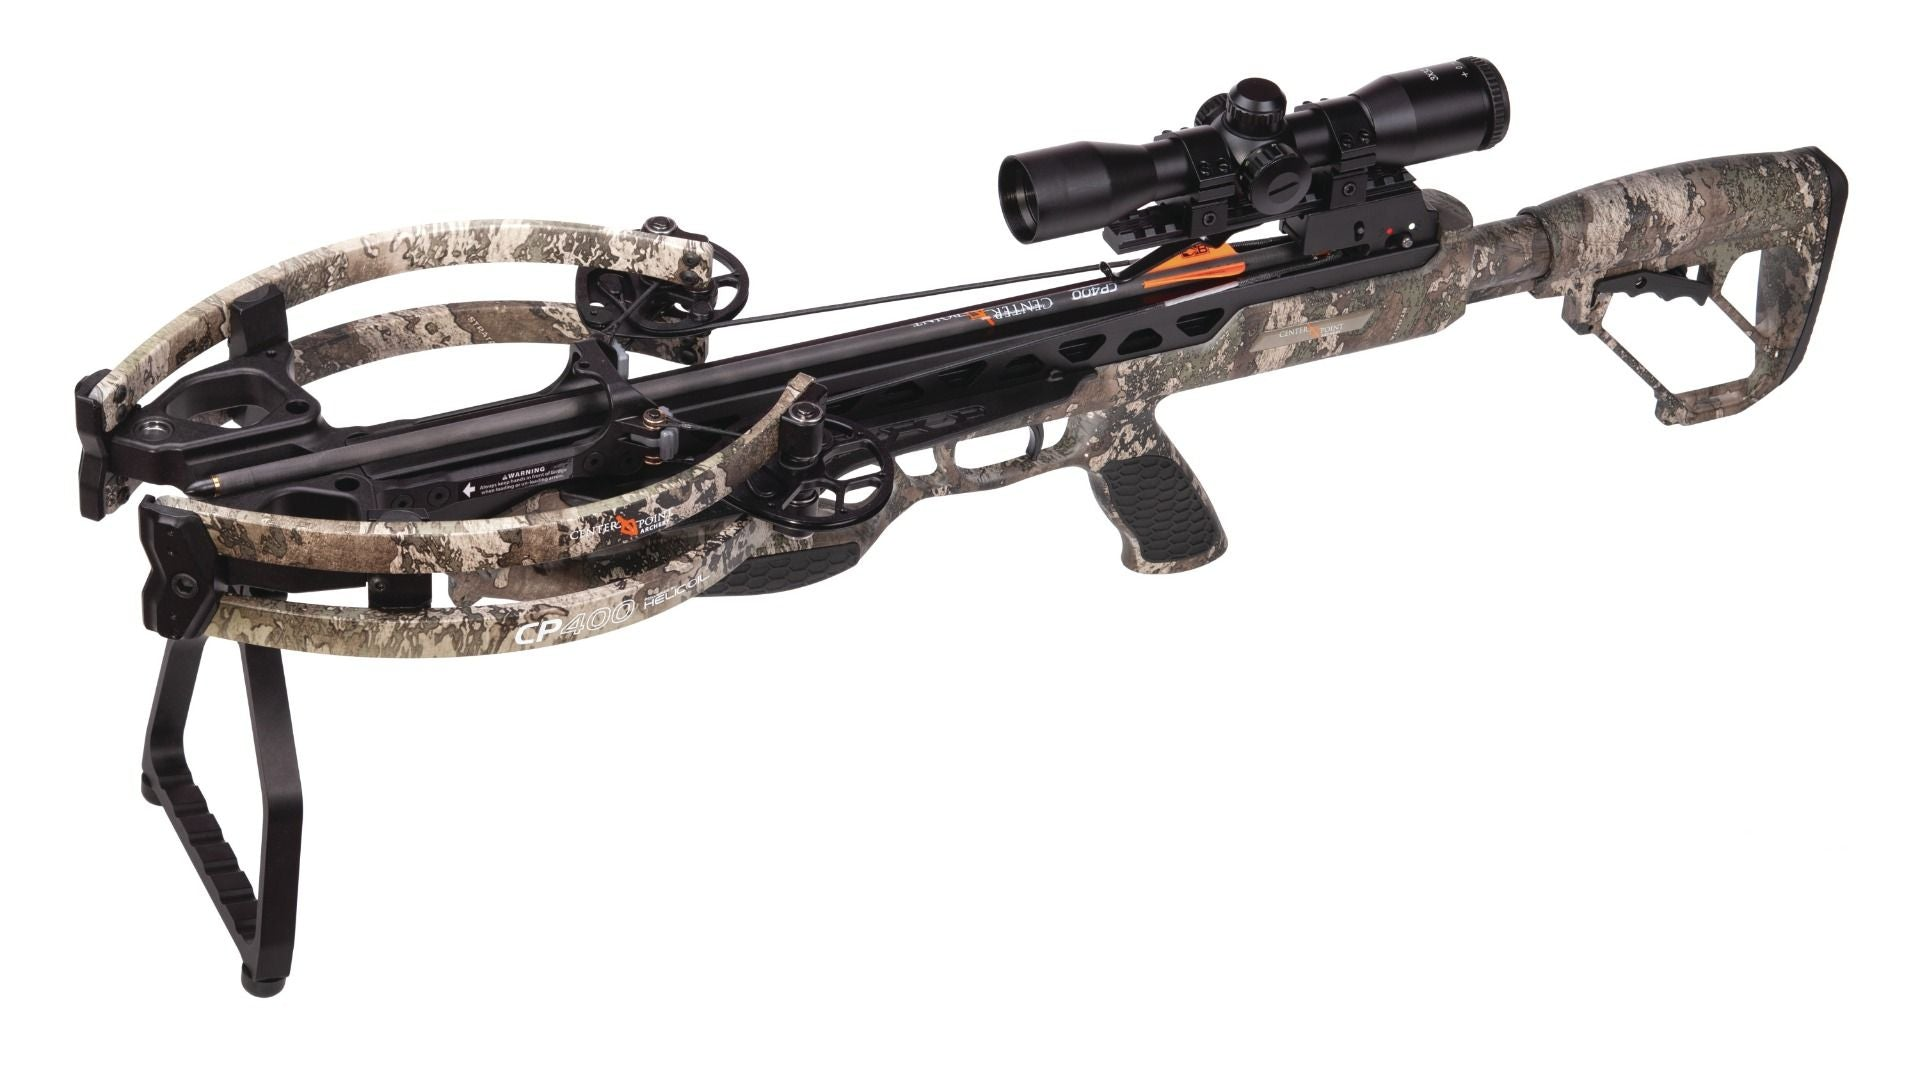 CenterPoint CP400 Crossbow Package for sale at Kiigns Hunting.